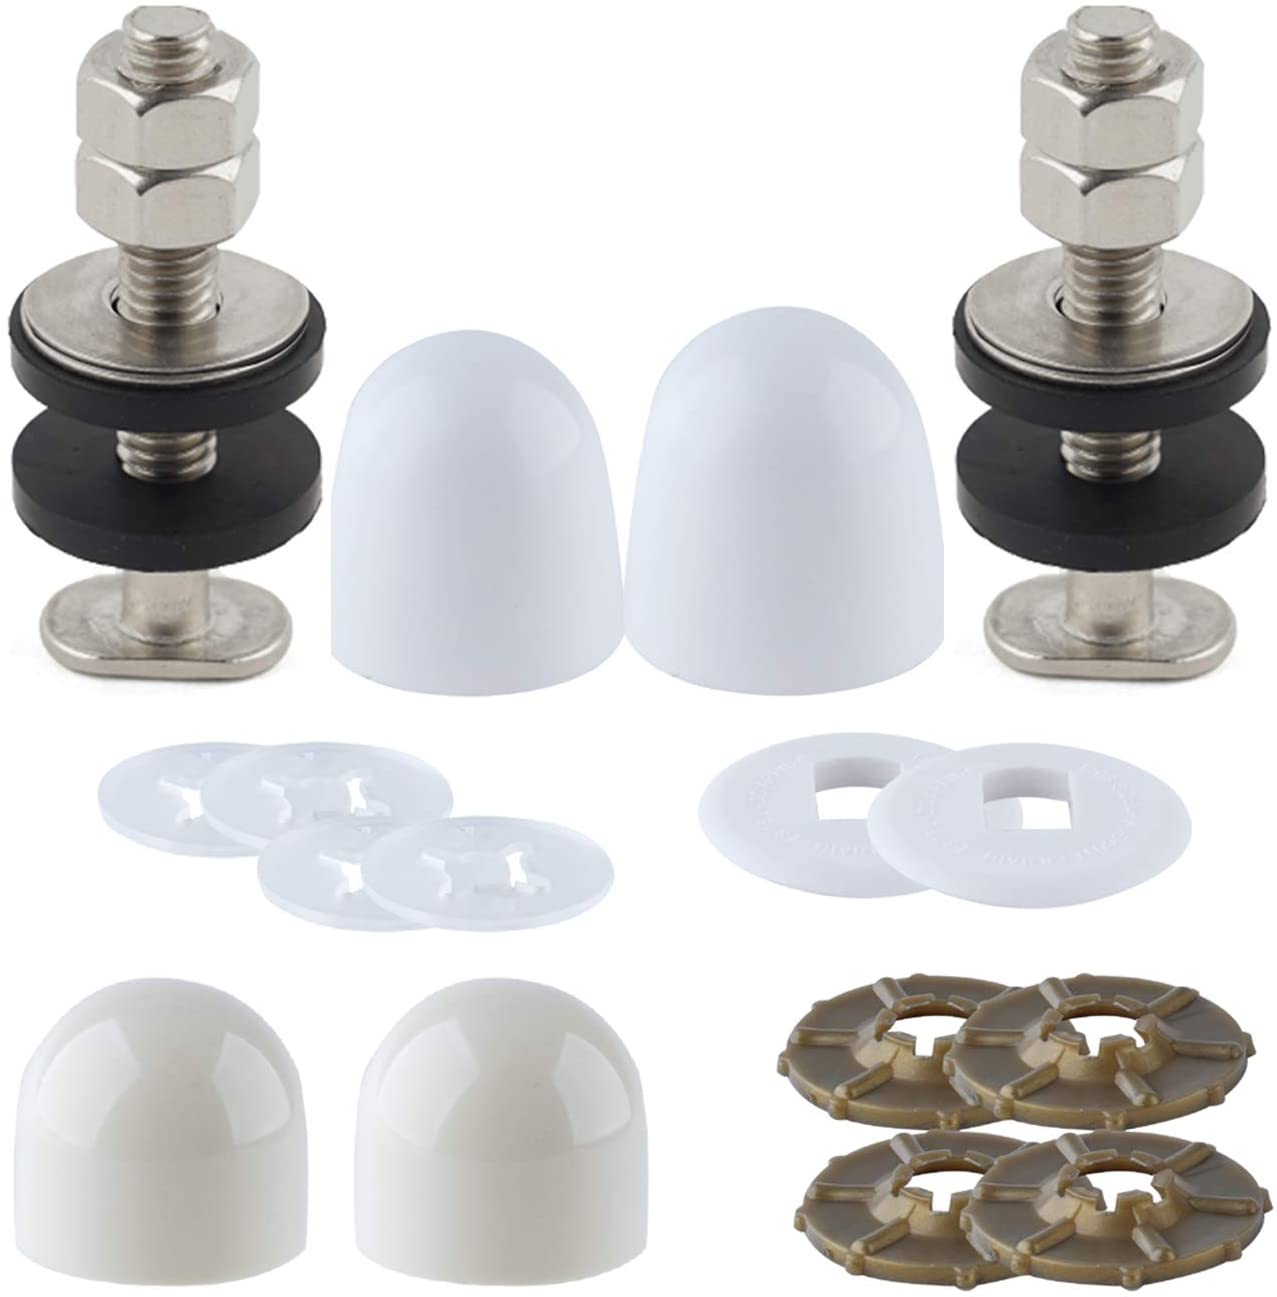 Toilet Floor Bolts And Caps Set,Stainless Steel Washers And Round Cover Caps Toilet Bolt Kit, White